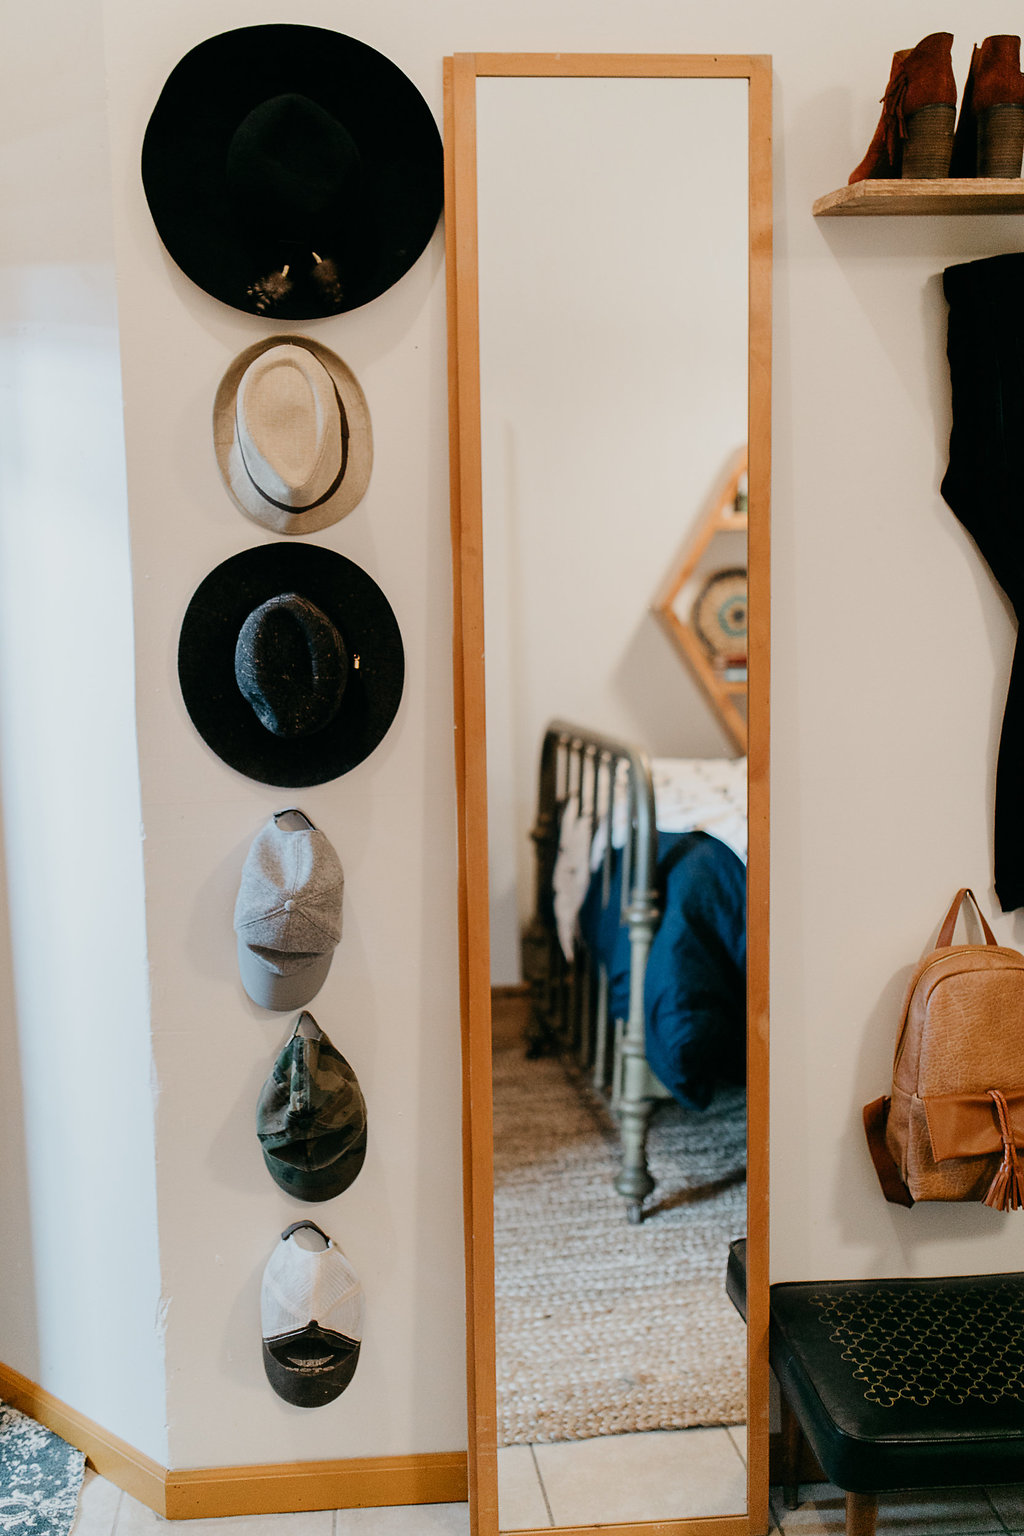 Hats hanging on the wall next to a floor length mirror